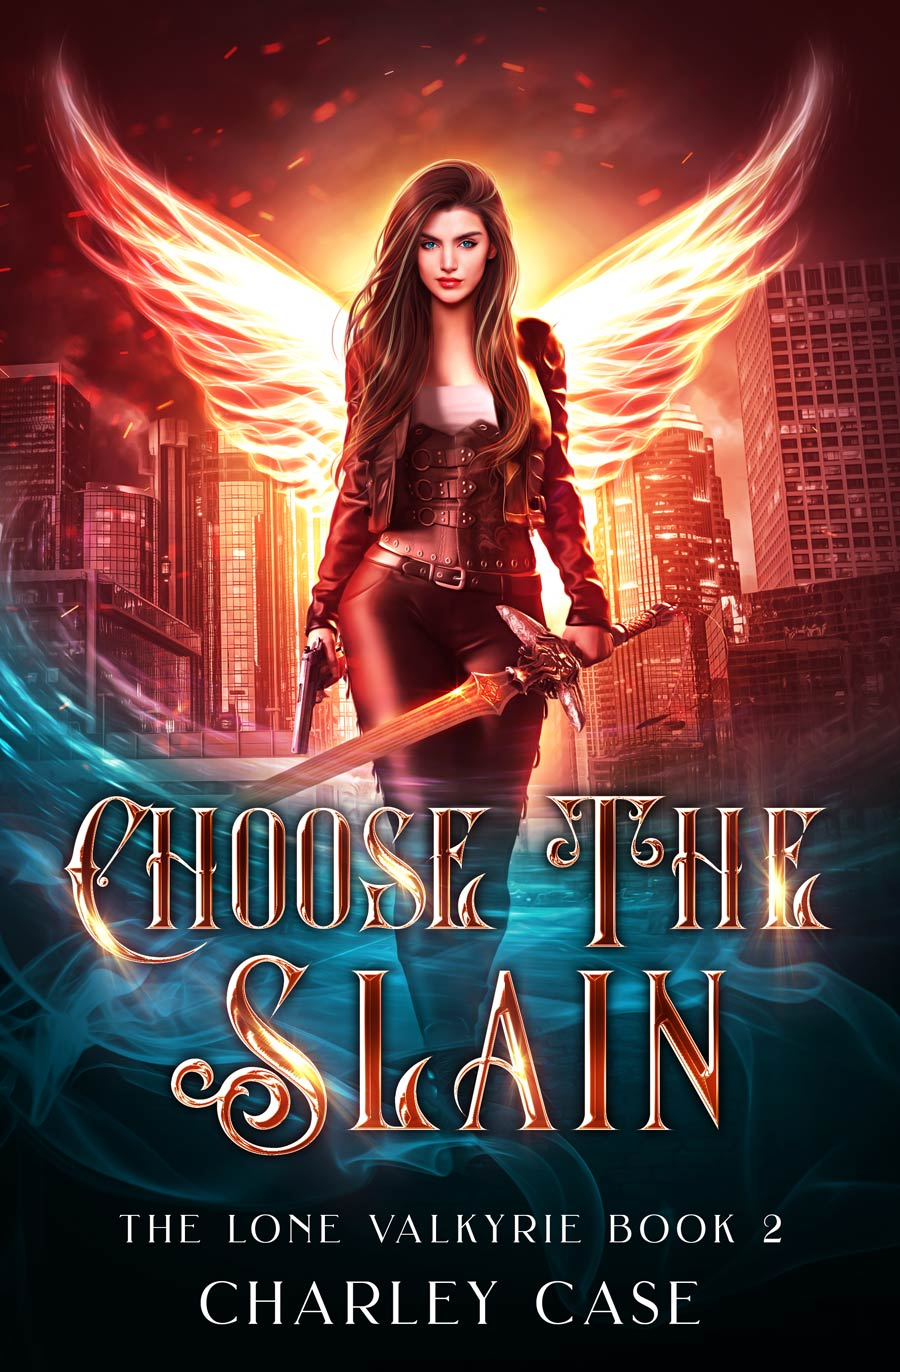 The Lone Valkyrie Book 2: Choose the Slain